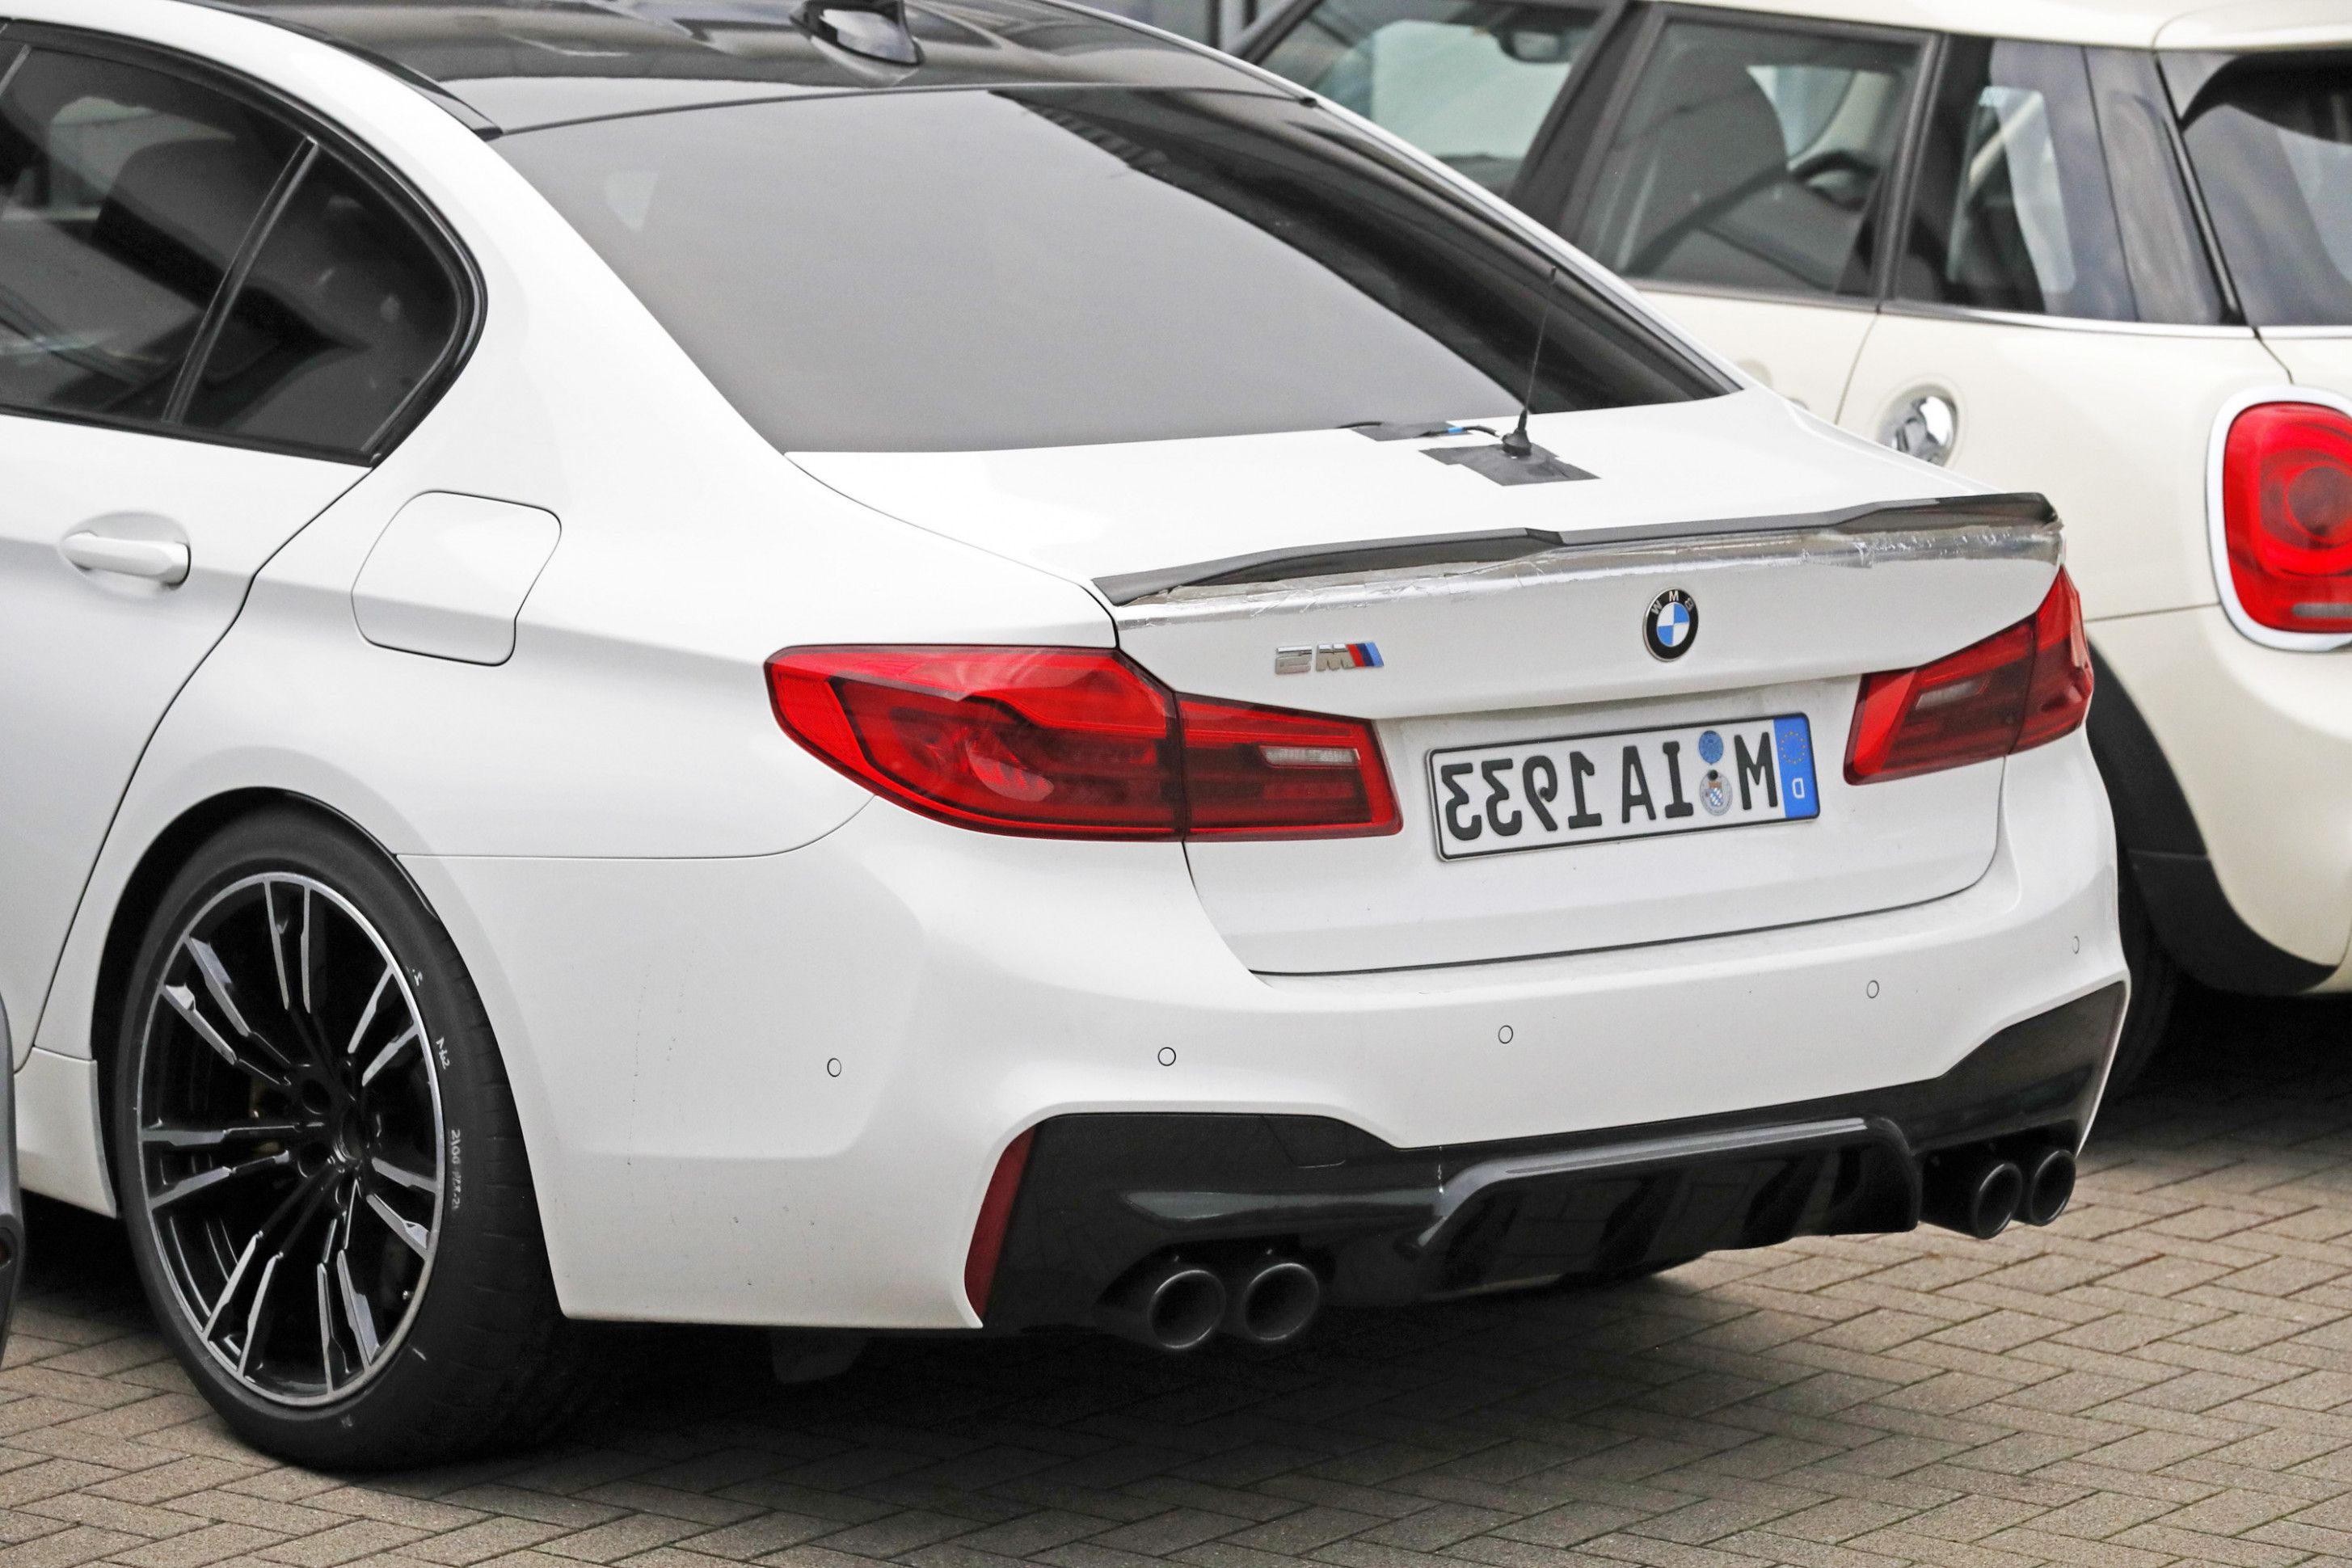 5 Things To Avoid In Bmw M5 Competition With Images Bmw M5 Bmw